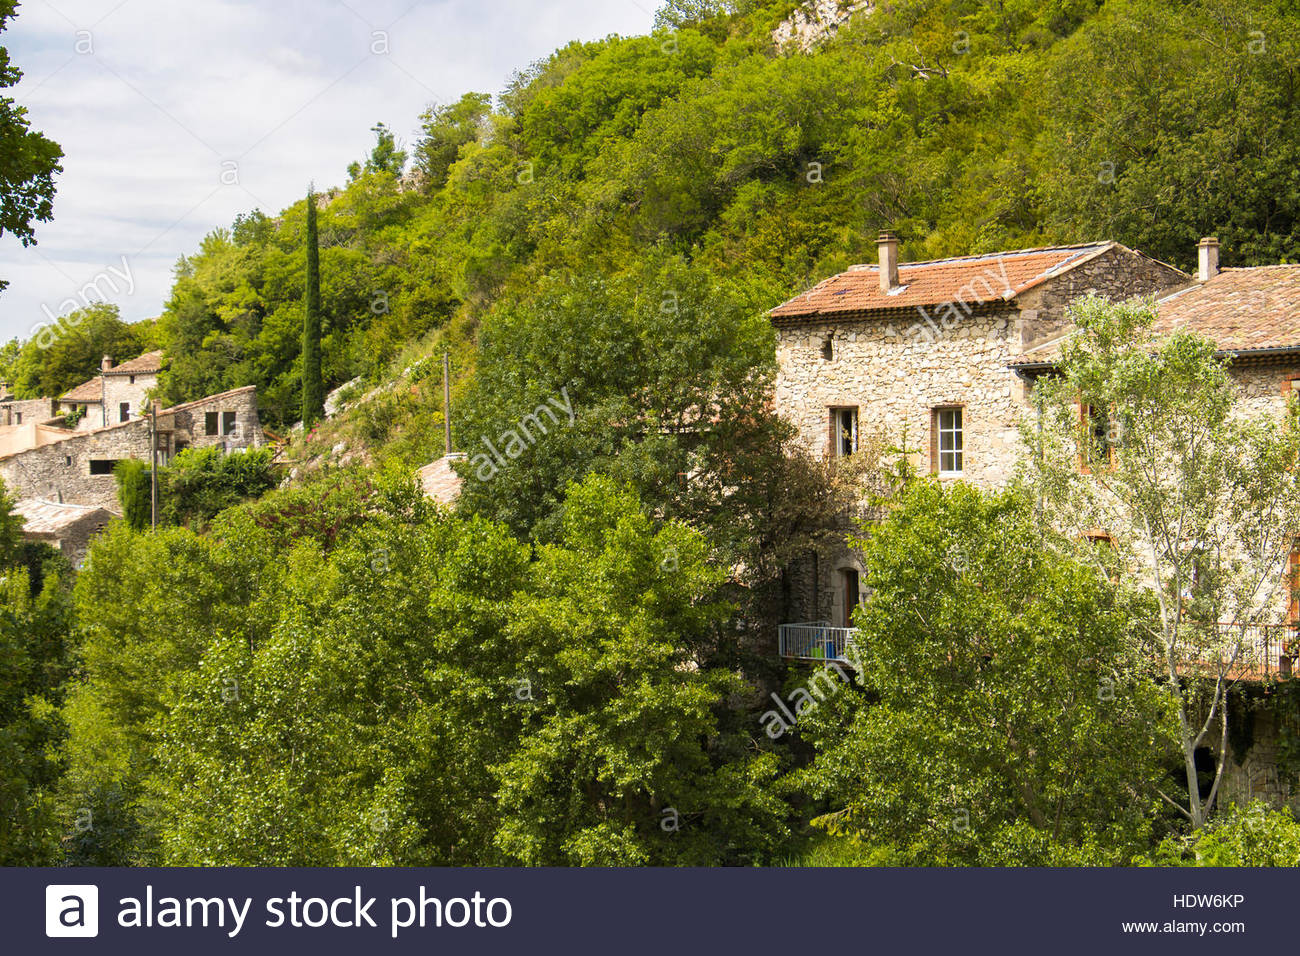 French countryside balcony stock photos french for French countryside house